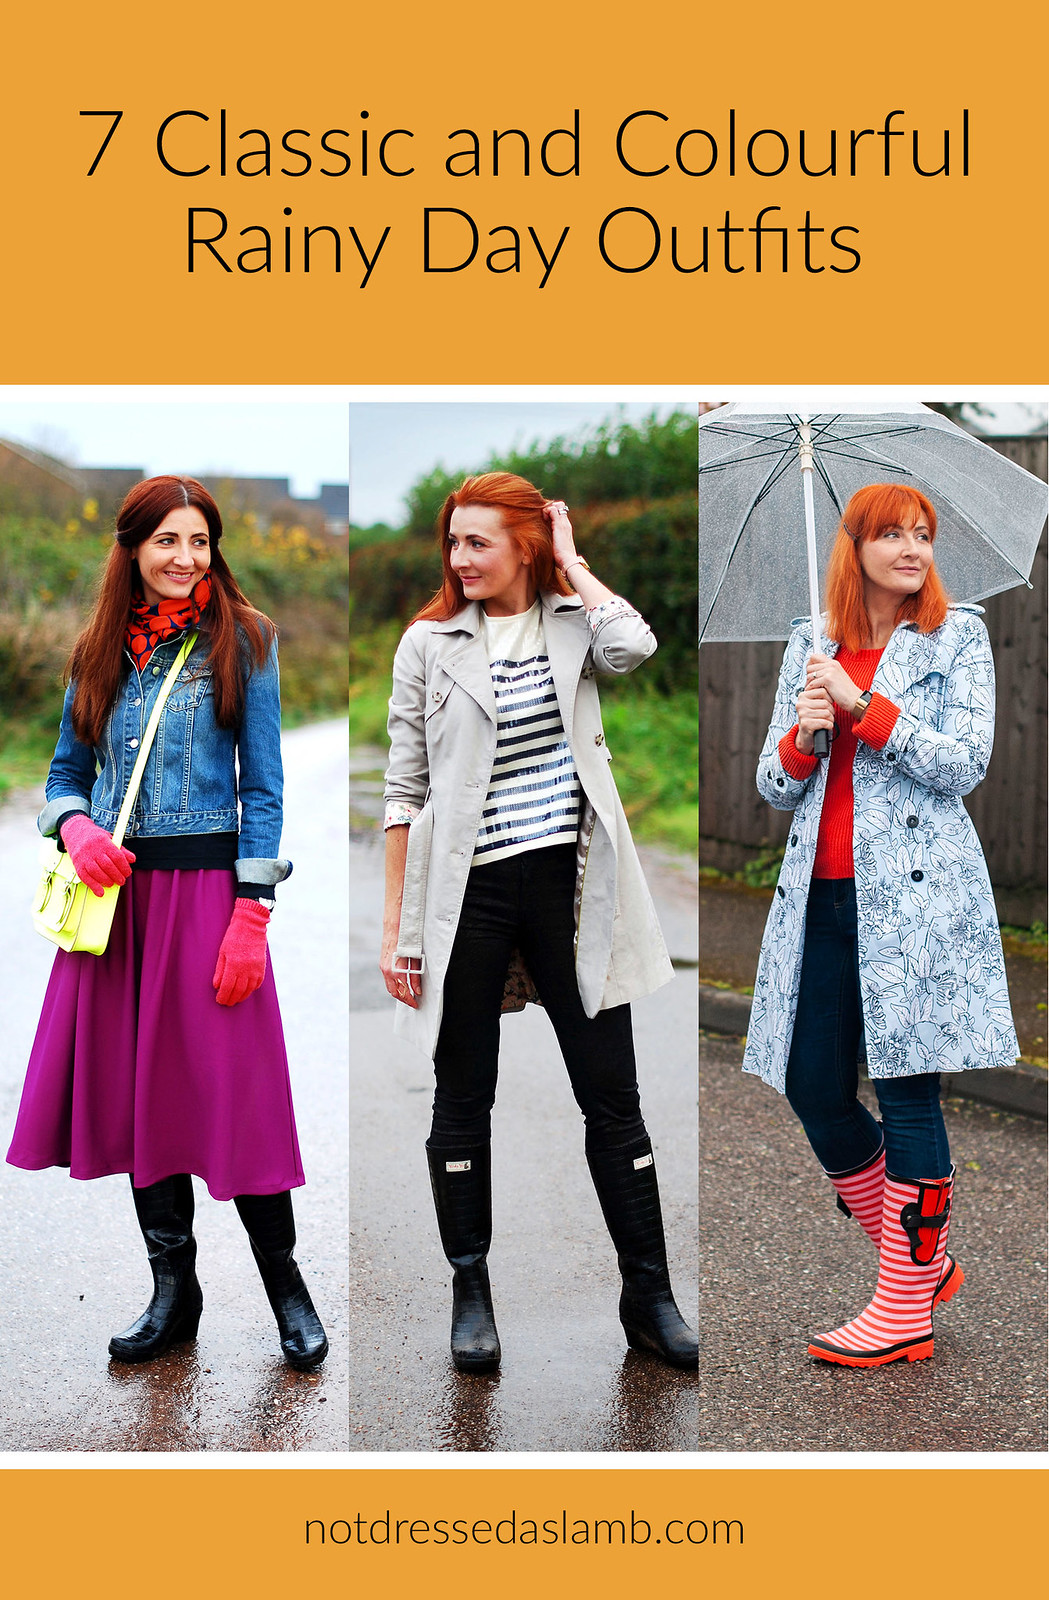 7 Colourful and Classic Rainy Day Outfits | Not Dressed As Lamb, Style Over 40